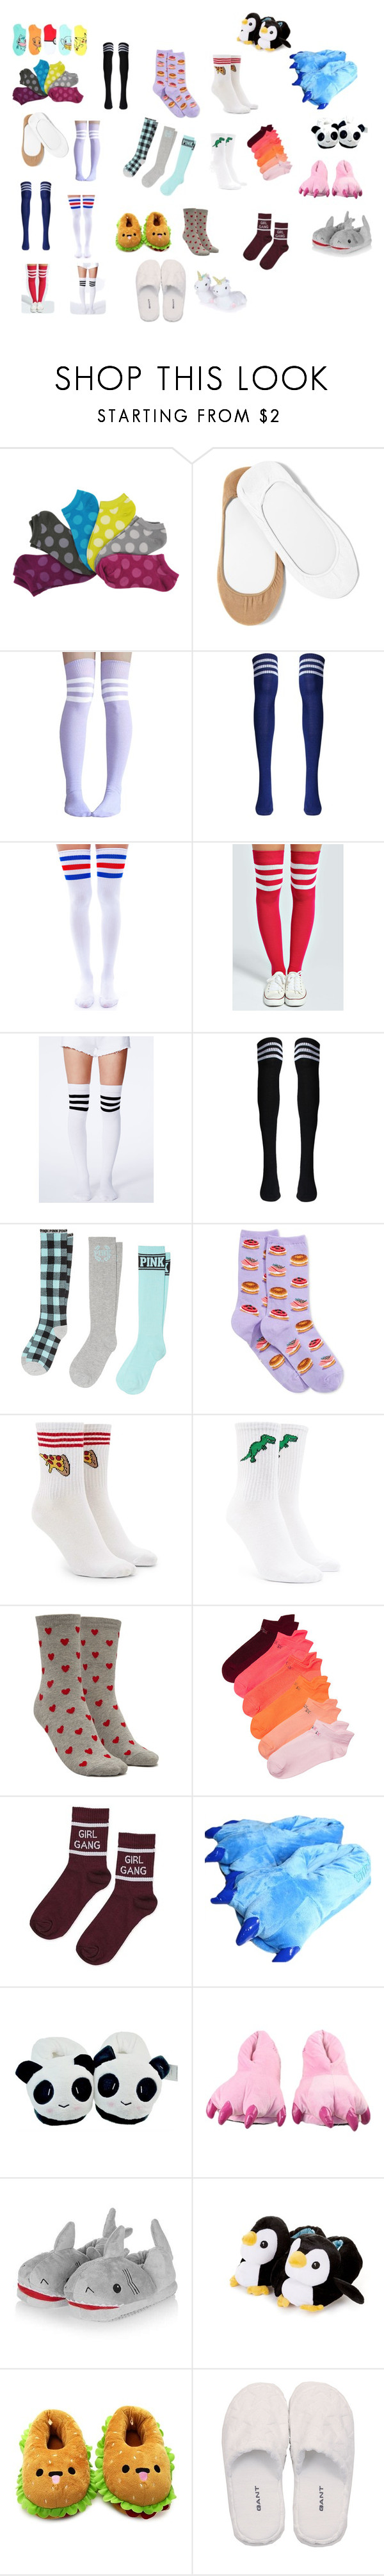 """""""Packing-Hanna"""" by hannalove1234 ❤ liked on Polyvore featuring Hot Topic, Hue, Leg Avenue, Boohoo, Missguided, HOT SOX, Forever 21, Victoria's Secret, Topshop and GANT"""